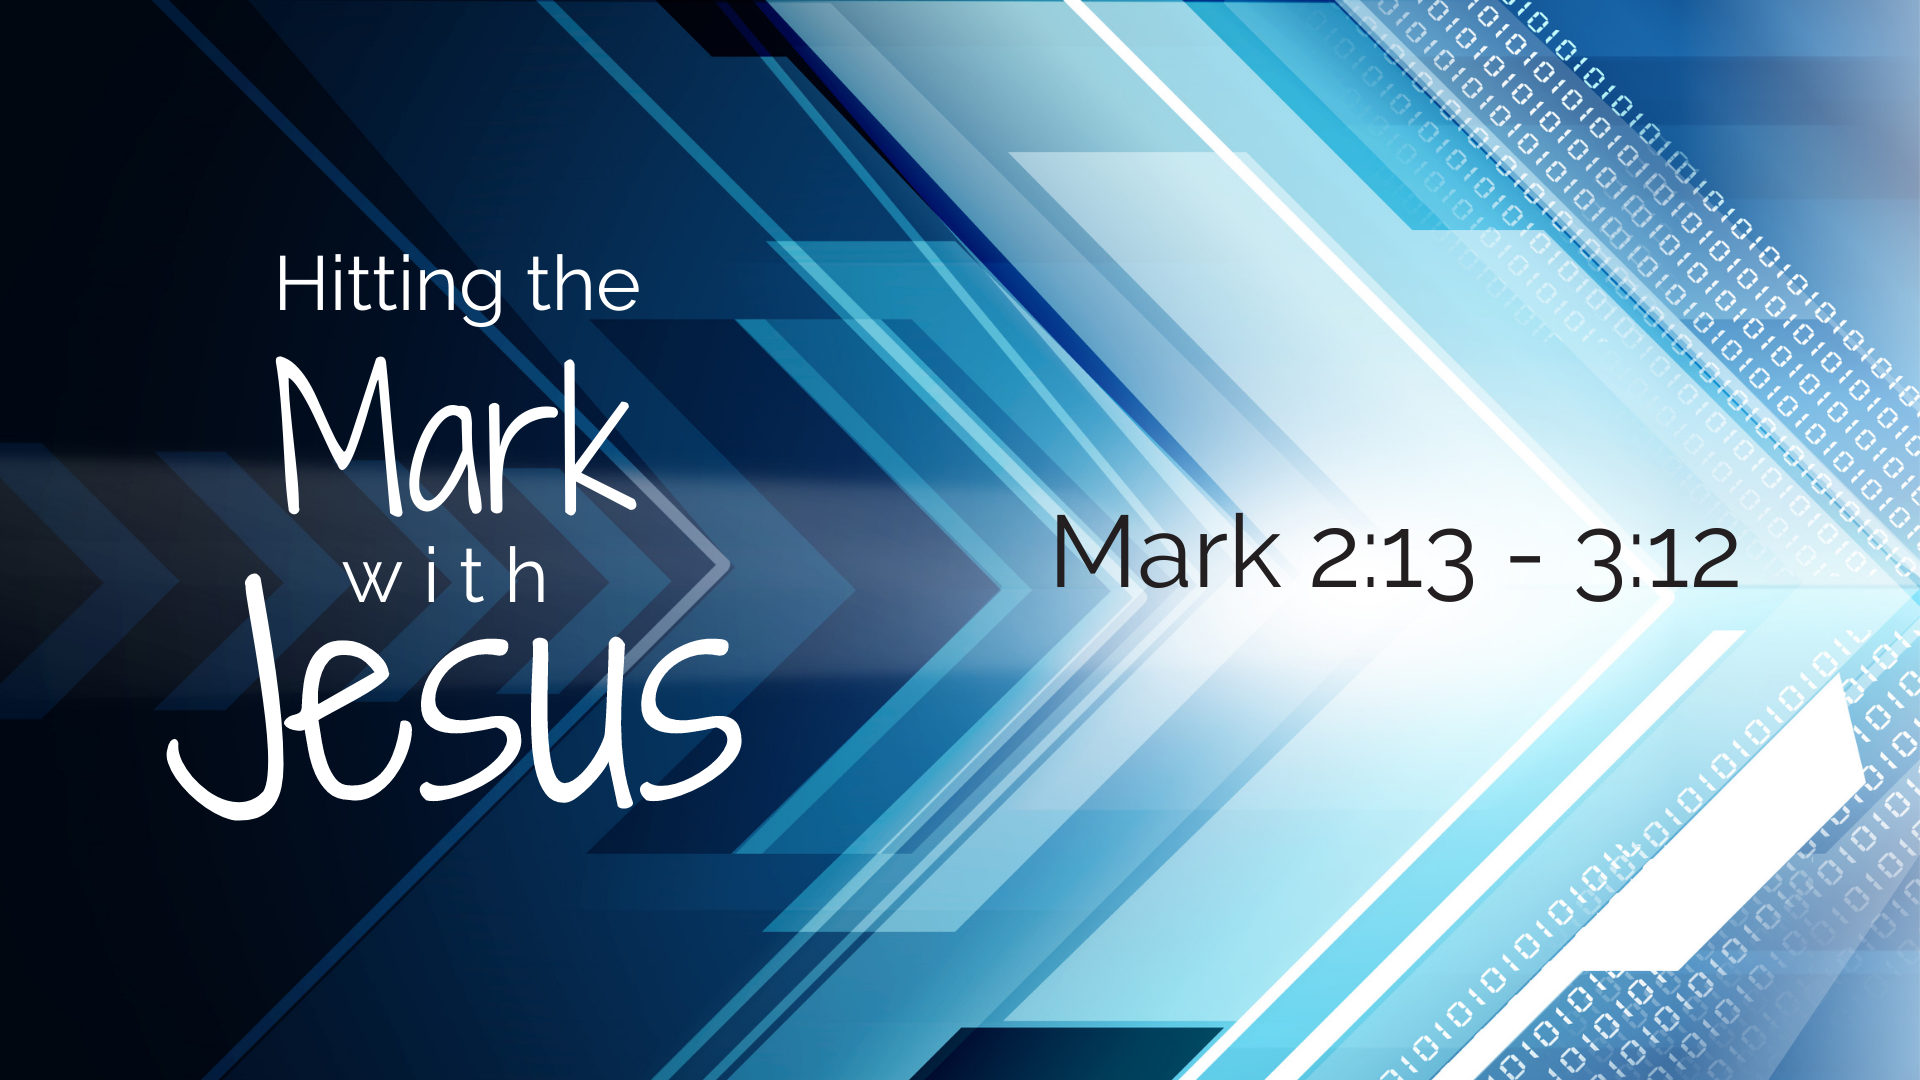 Jesus is the Lord Himself!